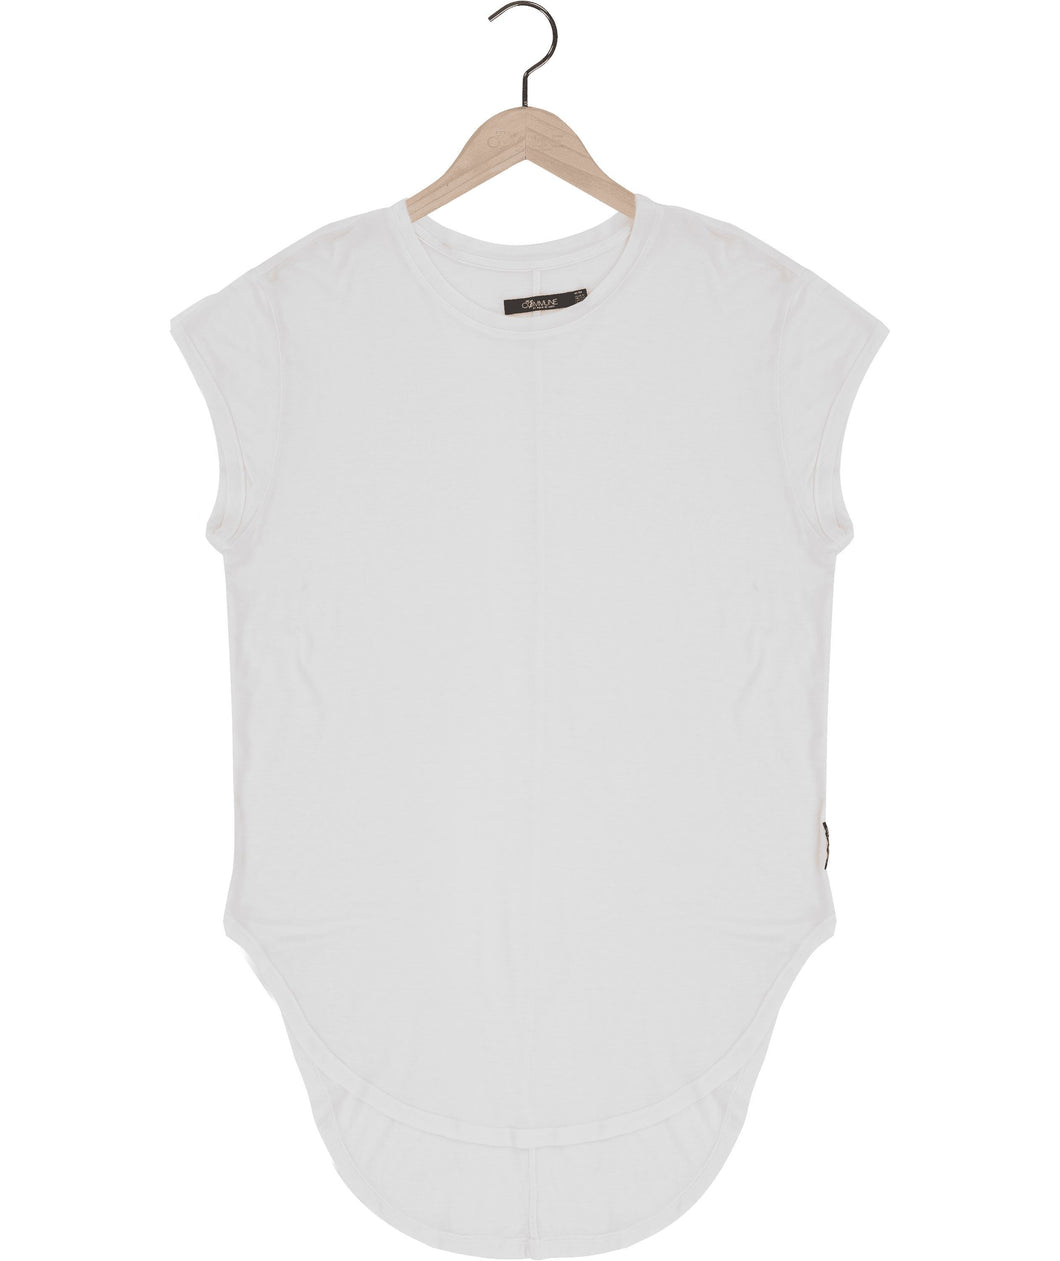 Cap sleeve silk jersey t-shirt in white Top DE LA COMMUNE